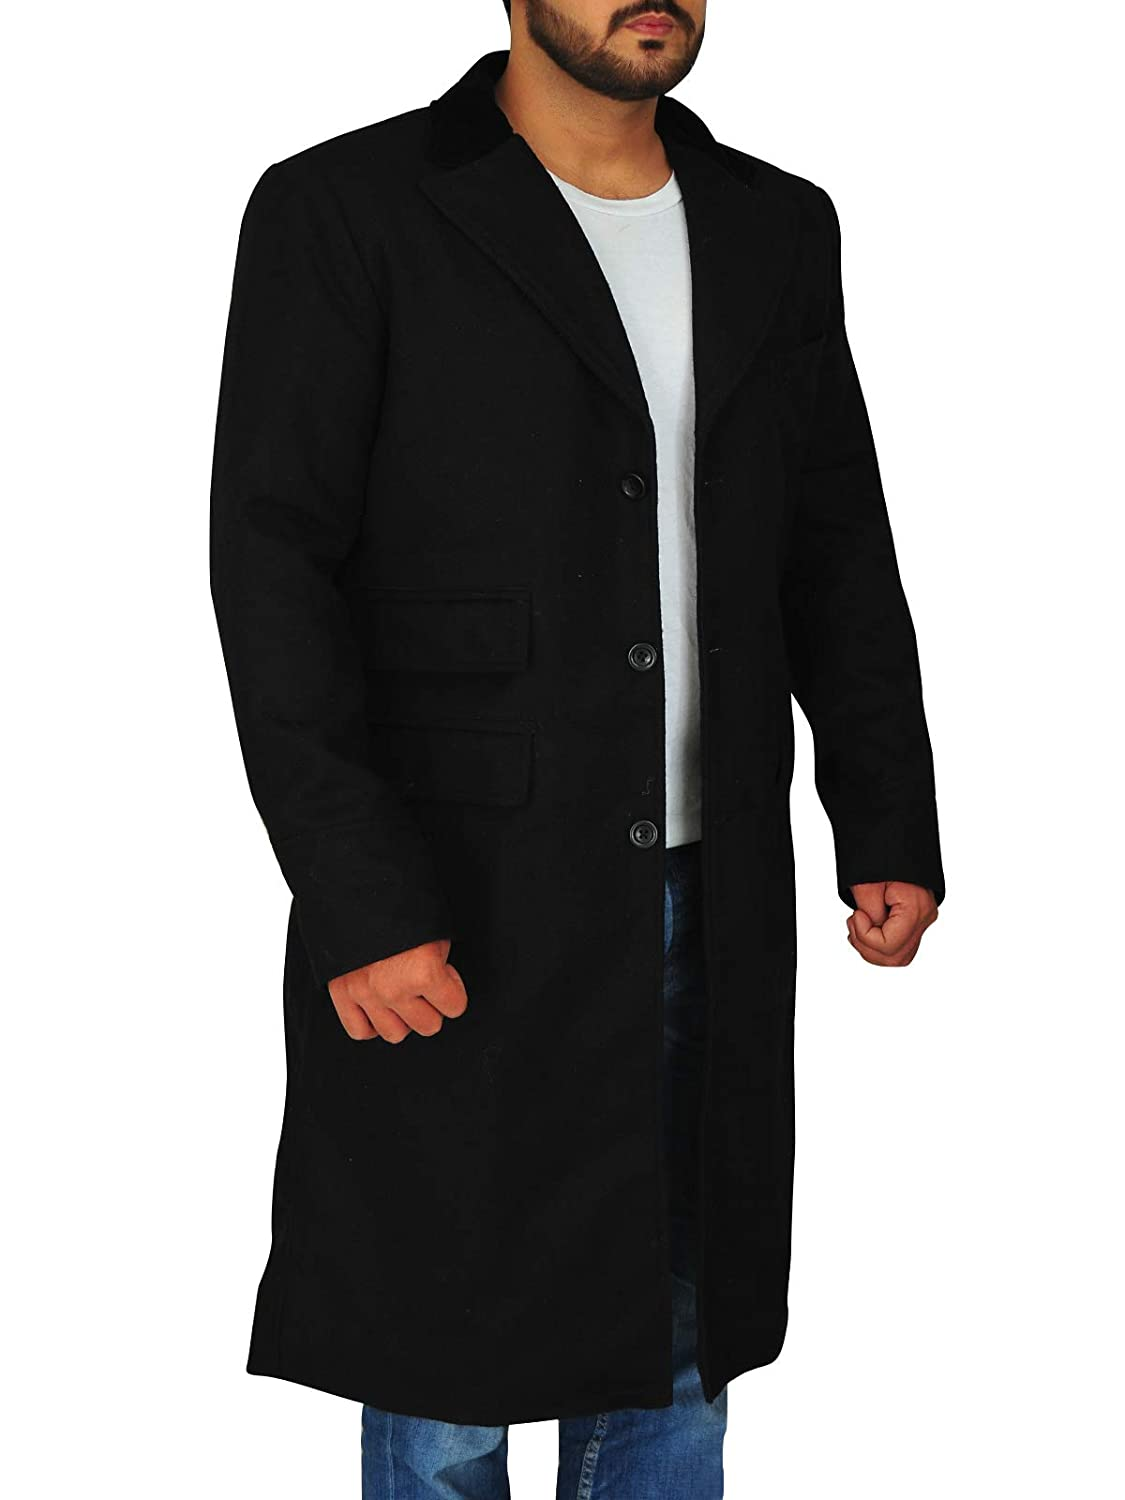 TrendHoop Mens Full Length Solid Black Overcoat Wool Blend Single Breasted 3 Button Fully Lined Hi